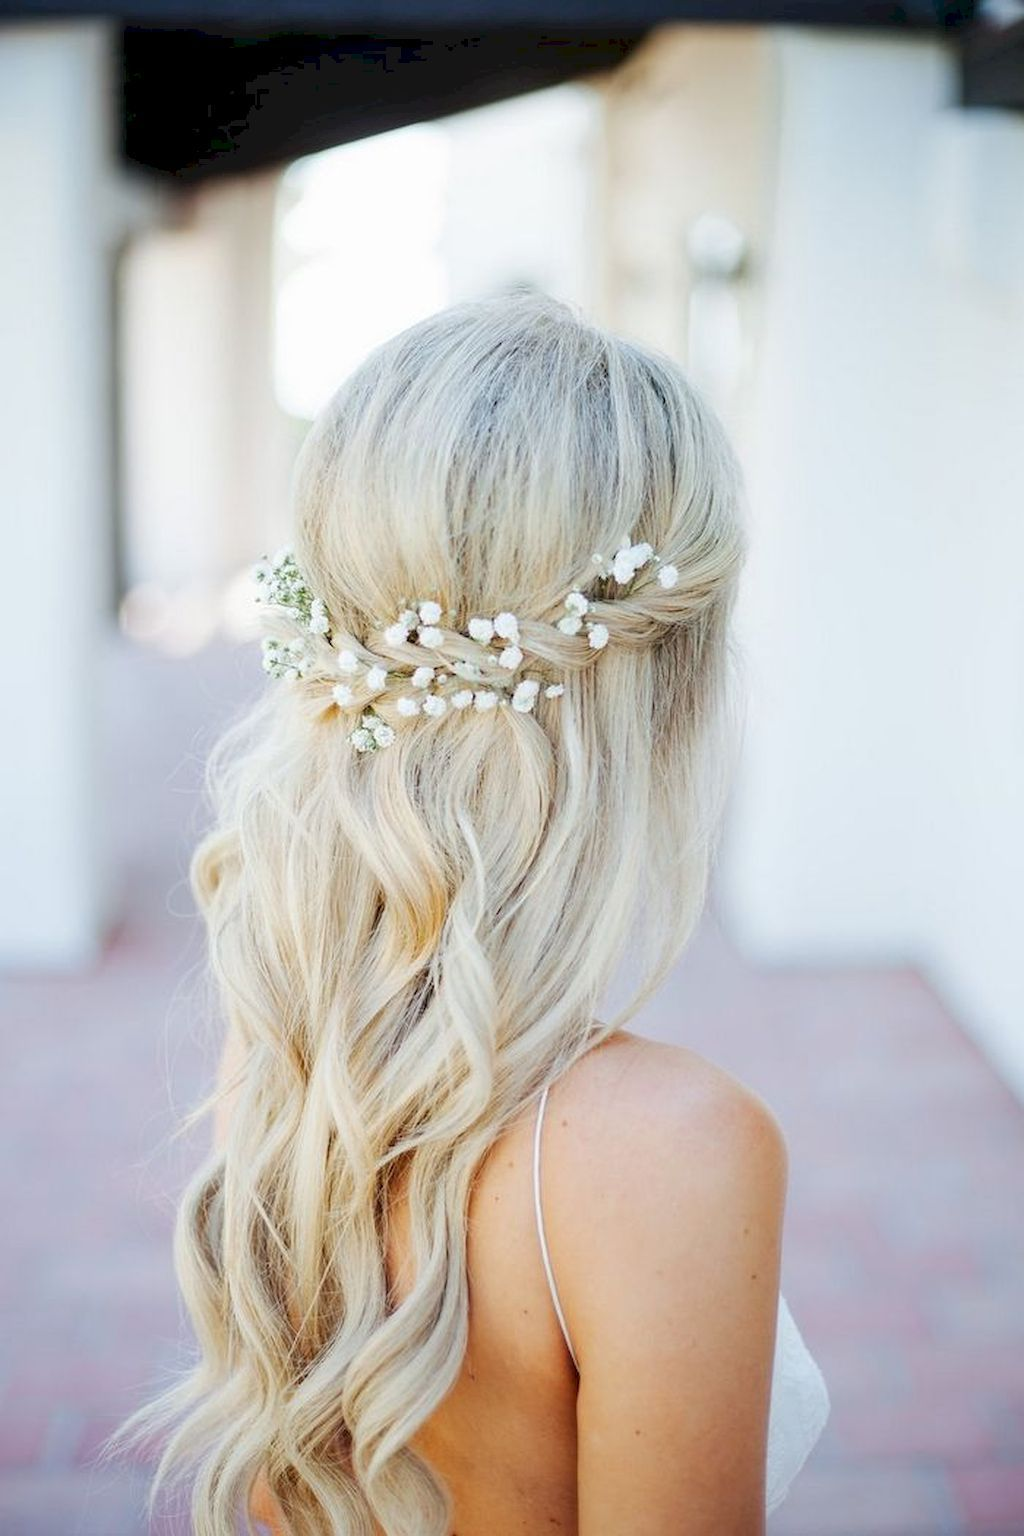 96 Bridal Wedding Hairstyles For Long Hair that will Inspire ...